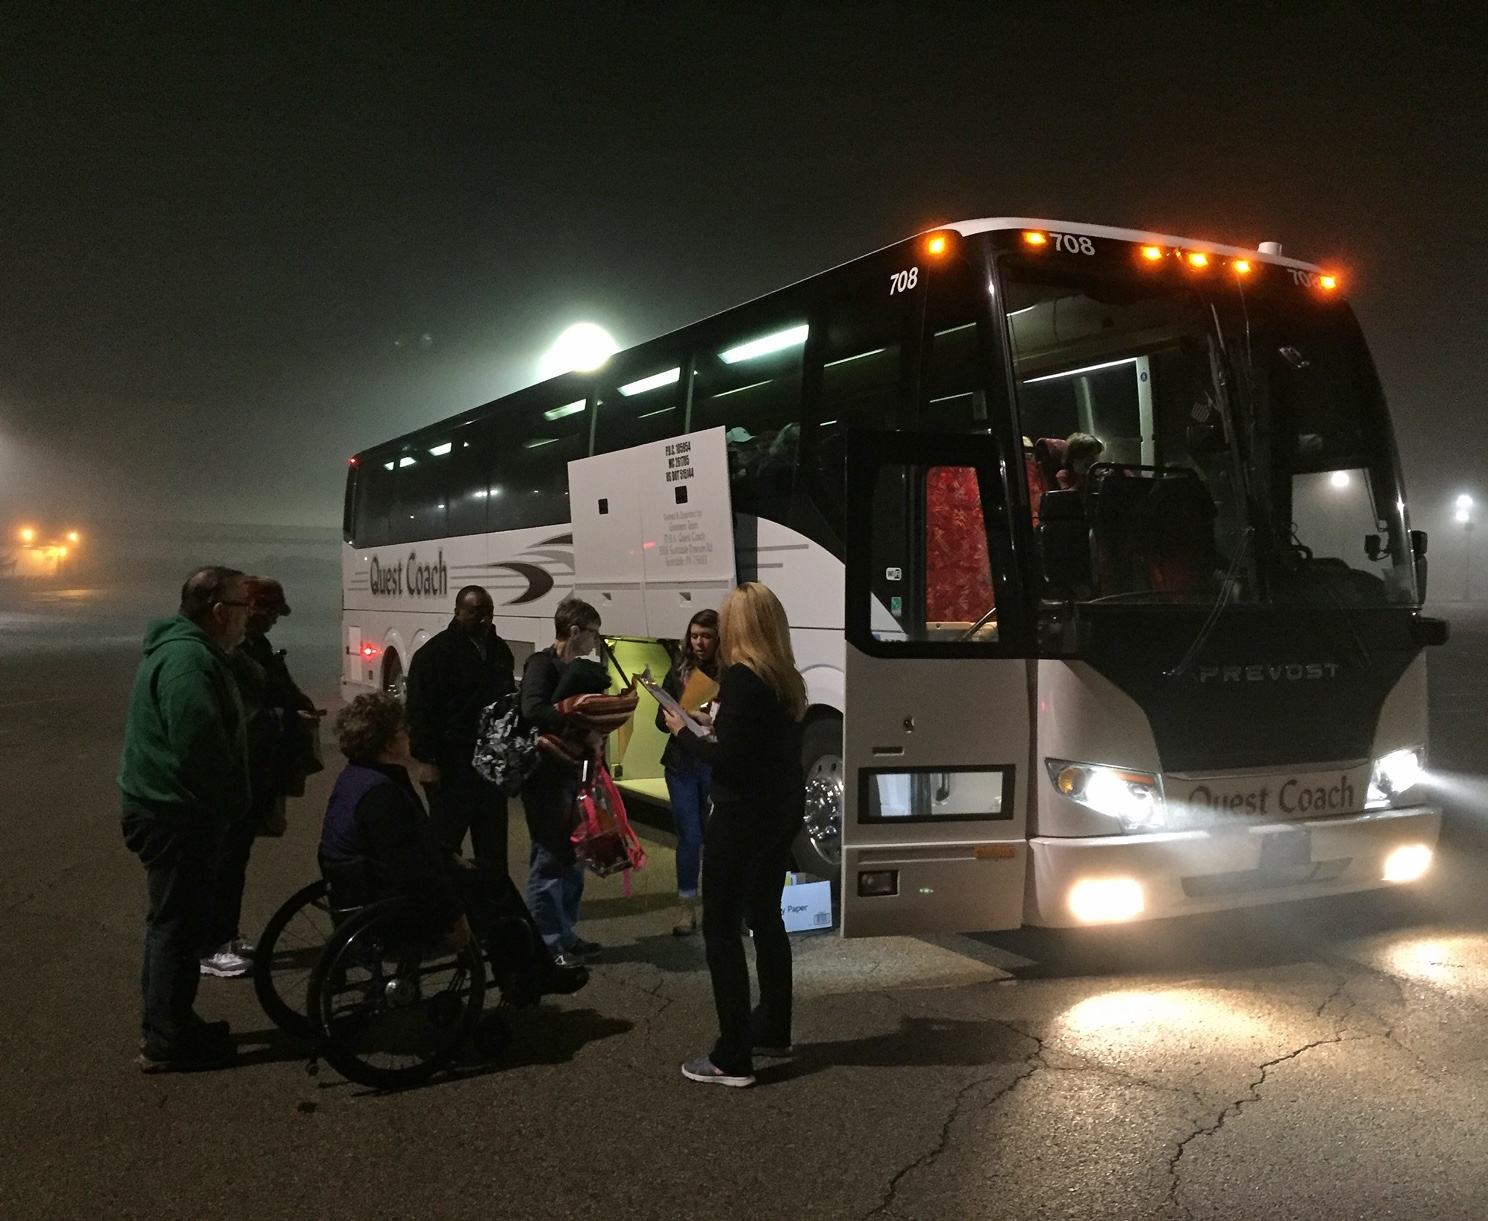 At 3:15 a.m. this morning a bus left from a location near Monroeville Mall and headed to Washington, D.C. for the Women's March on Washington. (Photo by Martha Rial for PublicSource)